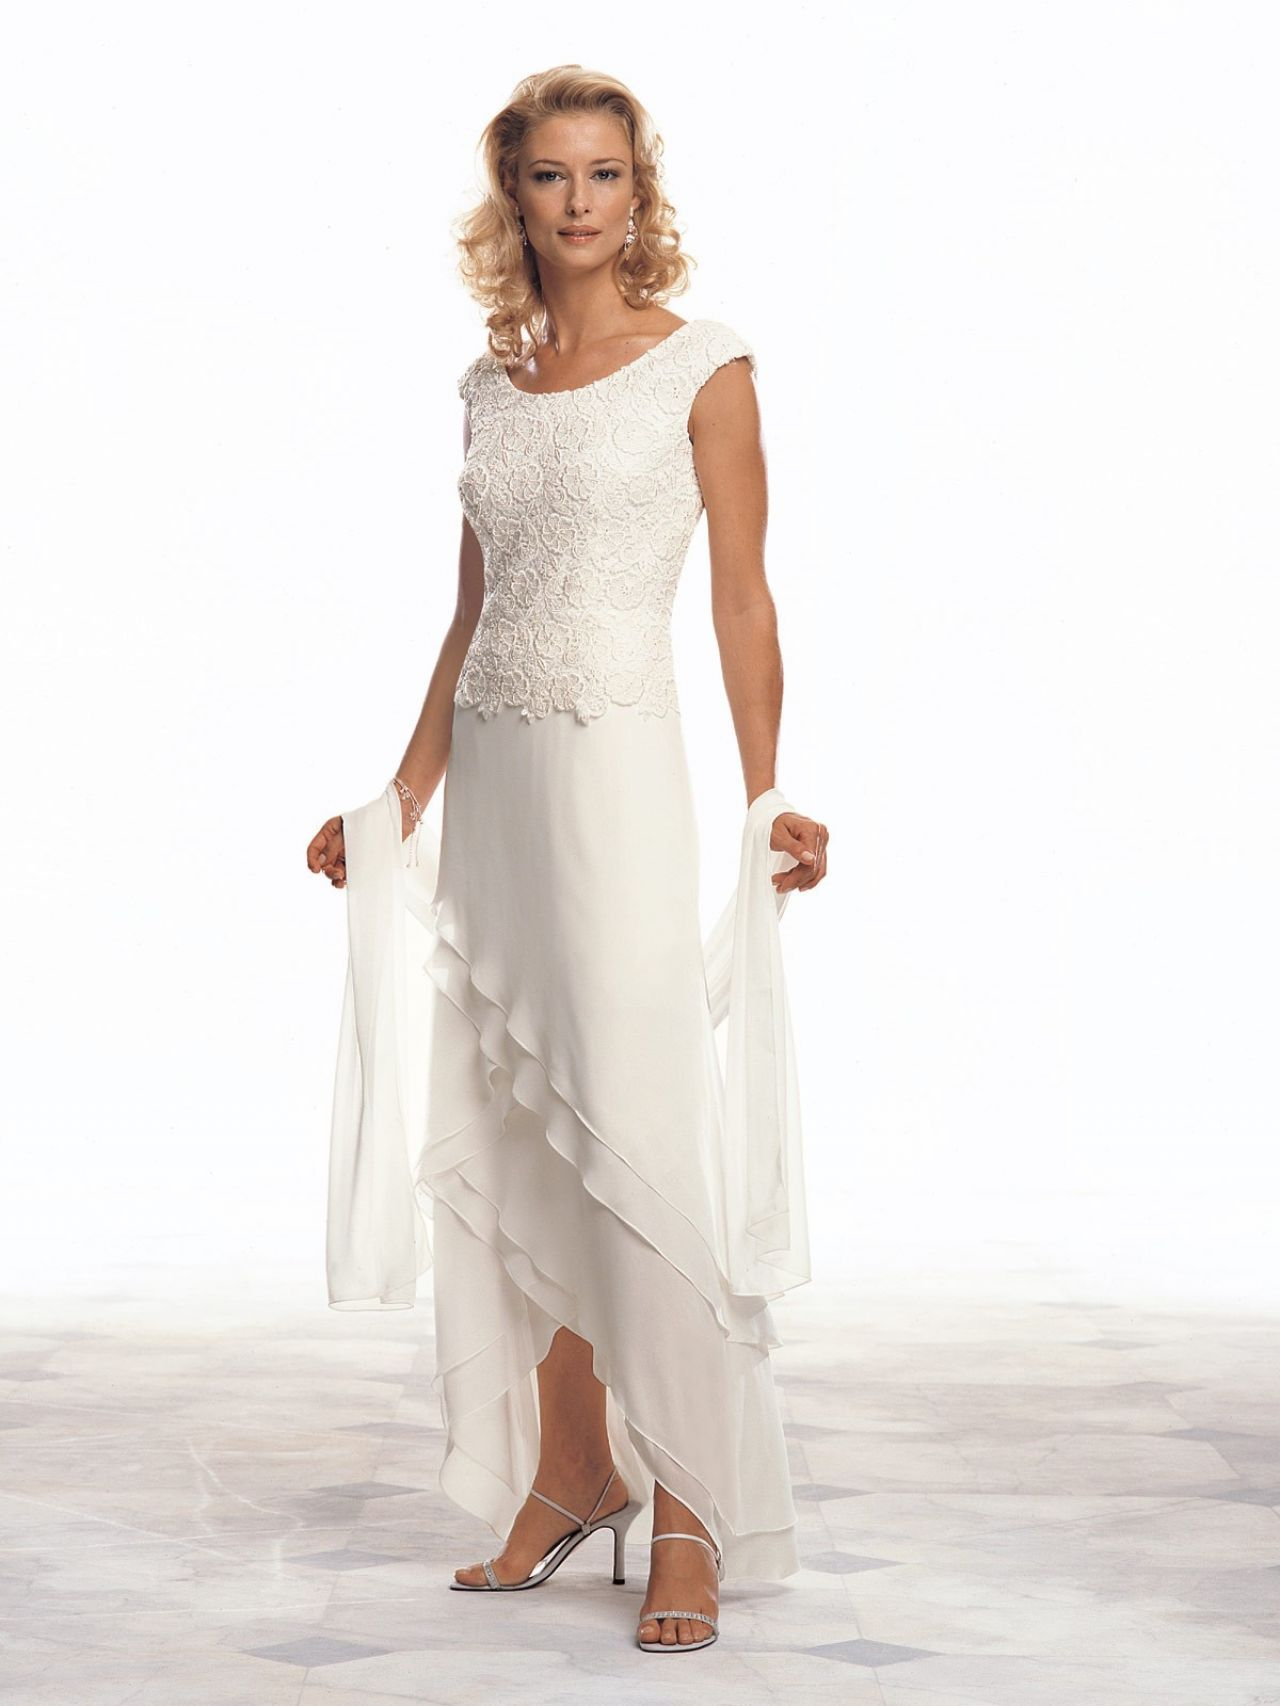 Mother of the bride beach dresses for weddings  Tropical Wedding Dresses For Mother Of The Bride  Gowns  Pinterest